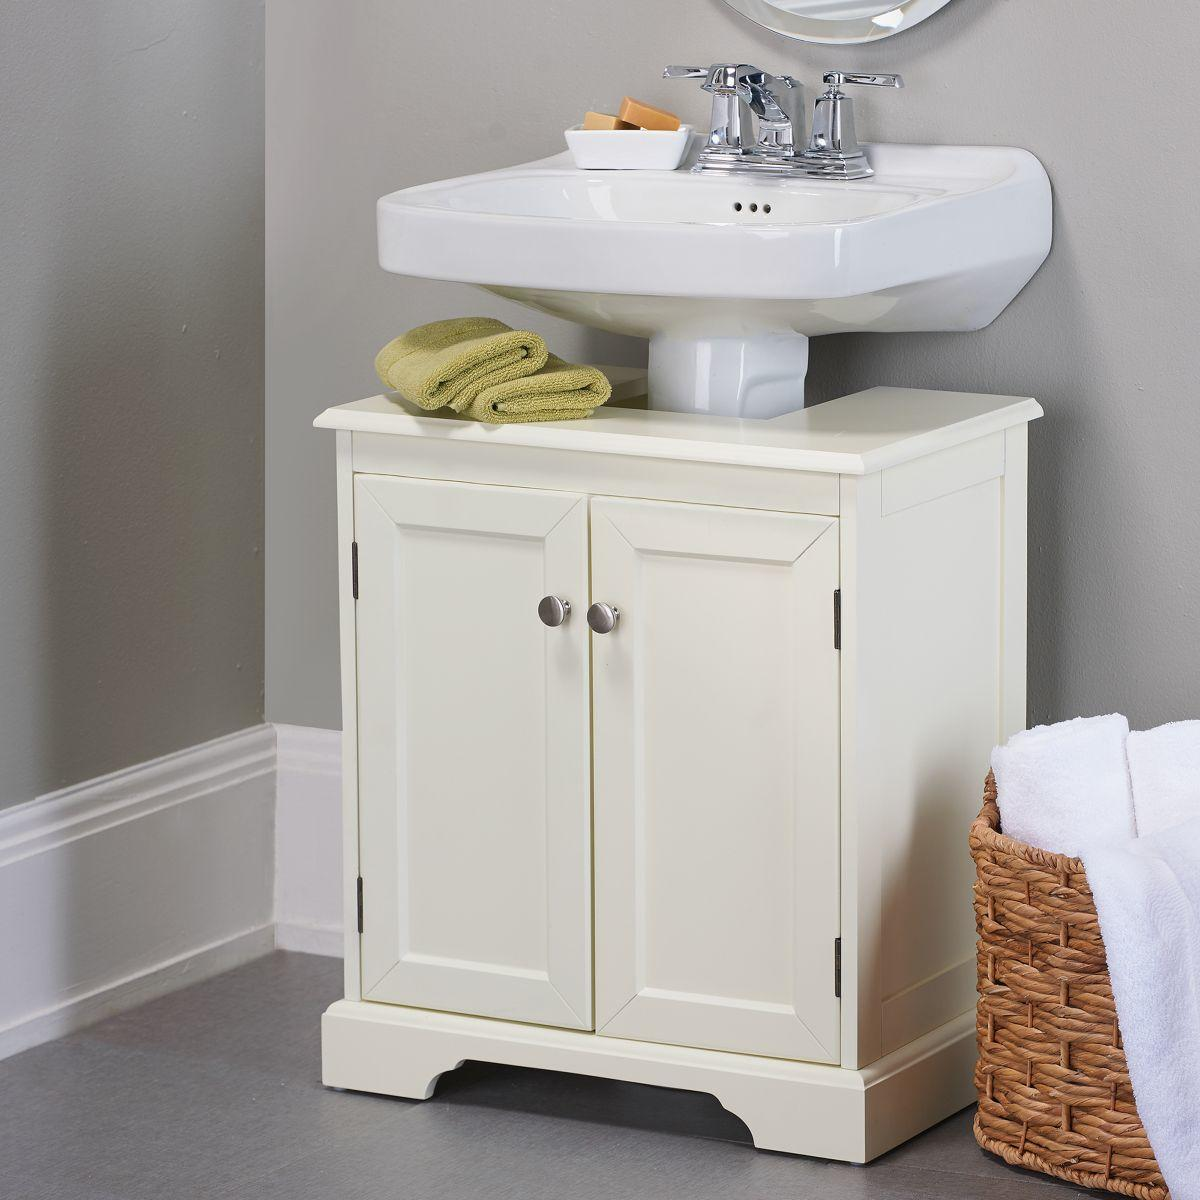 sink bathroom cabinet weatherby bathroom pedestal sink storage from improvements 26171